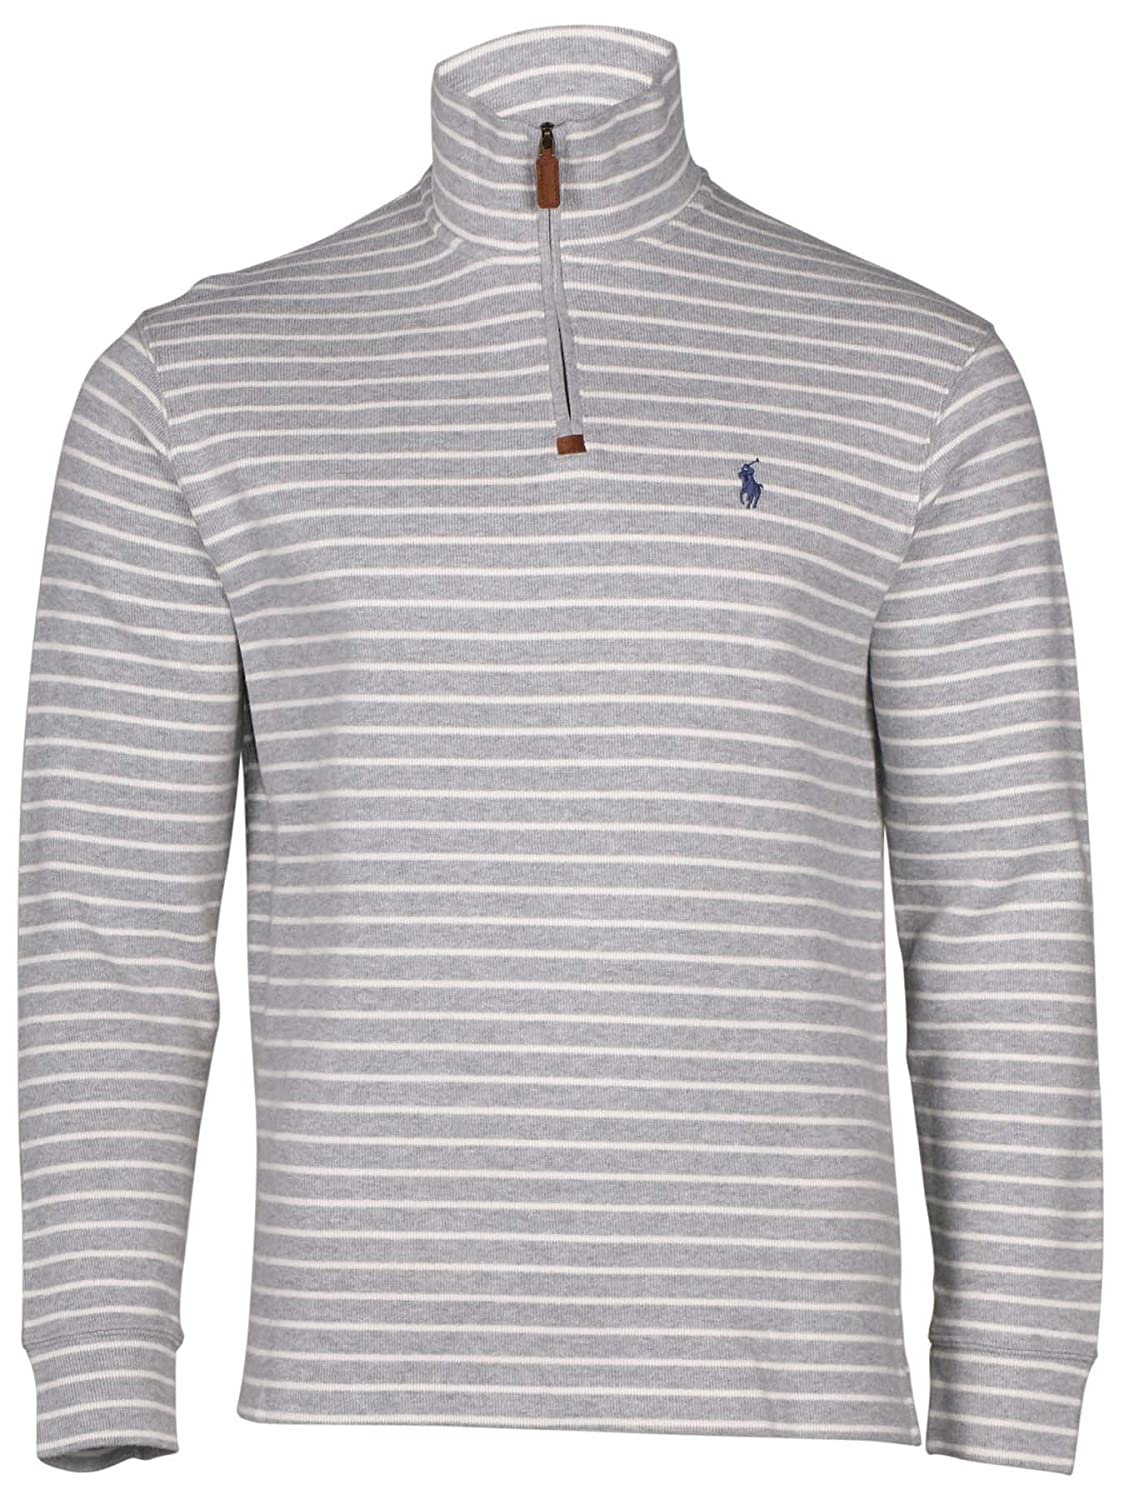 Polo Ralph Lauren Men's Half Zip Ribbed Mock Neck Sweater